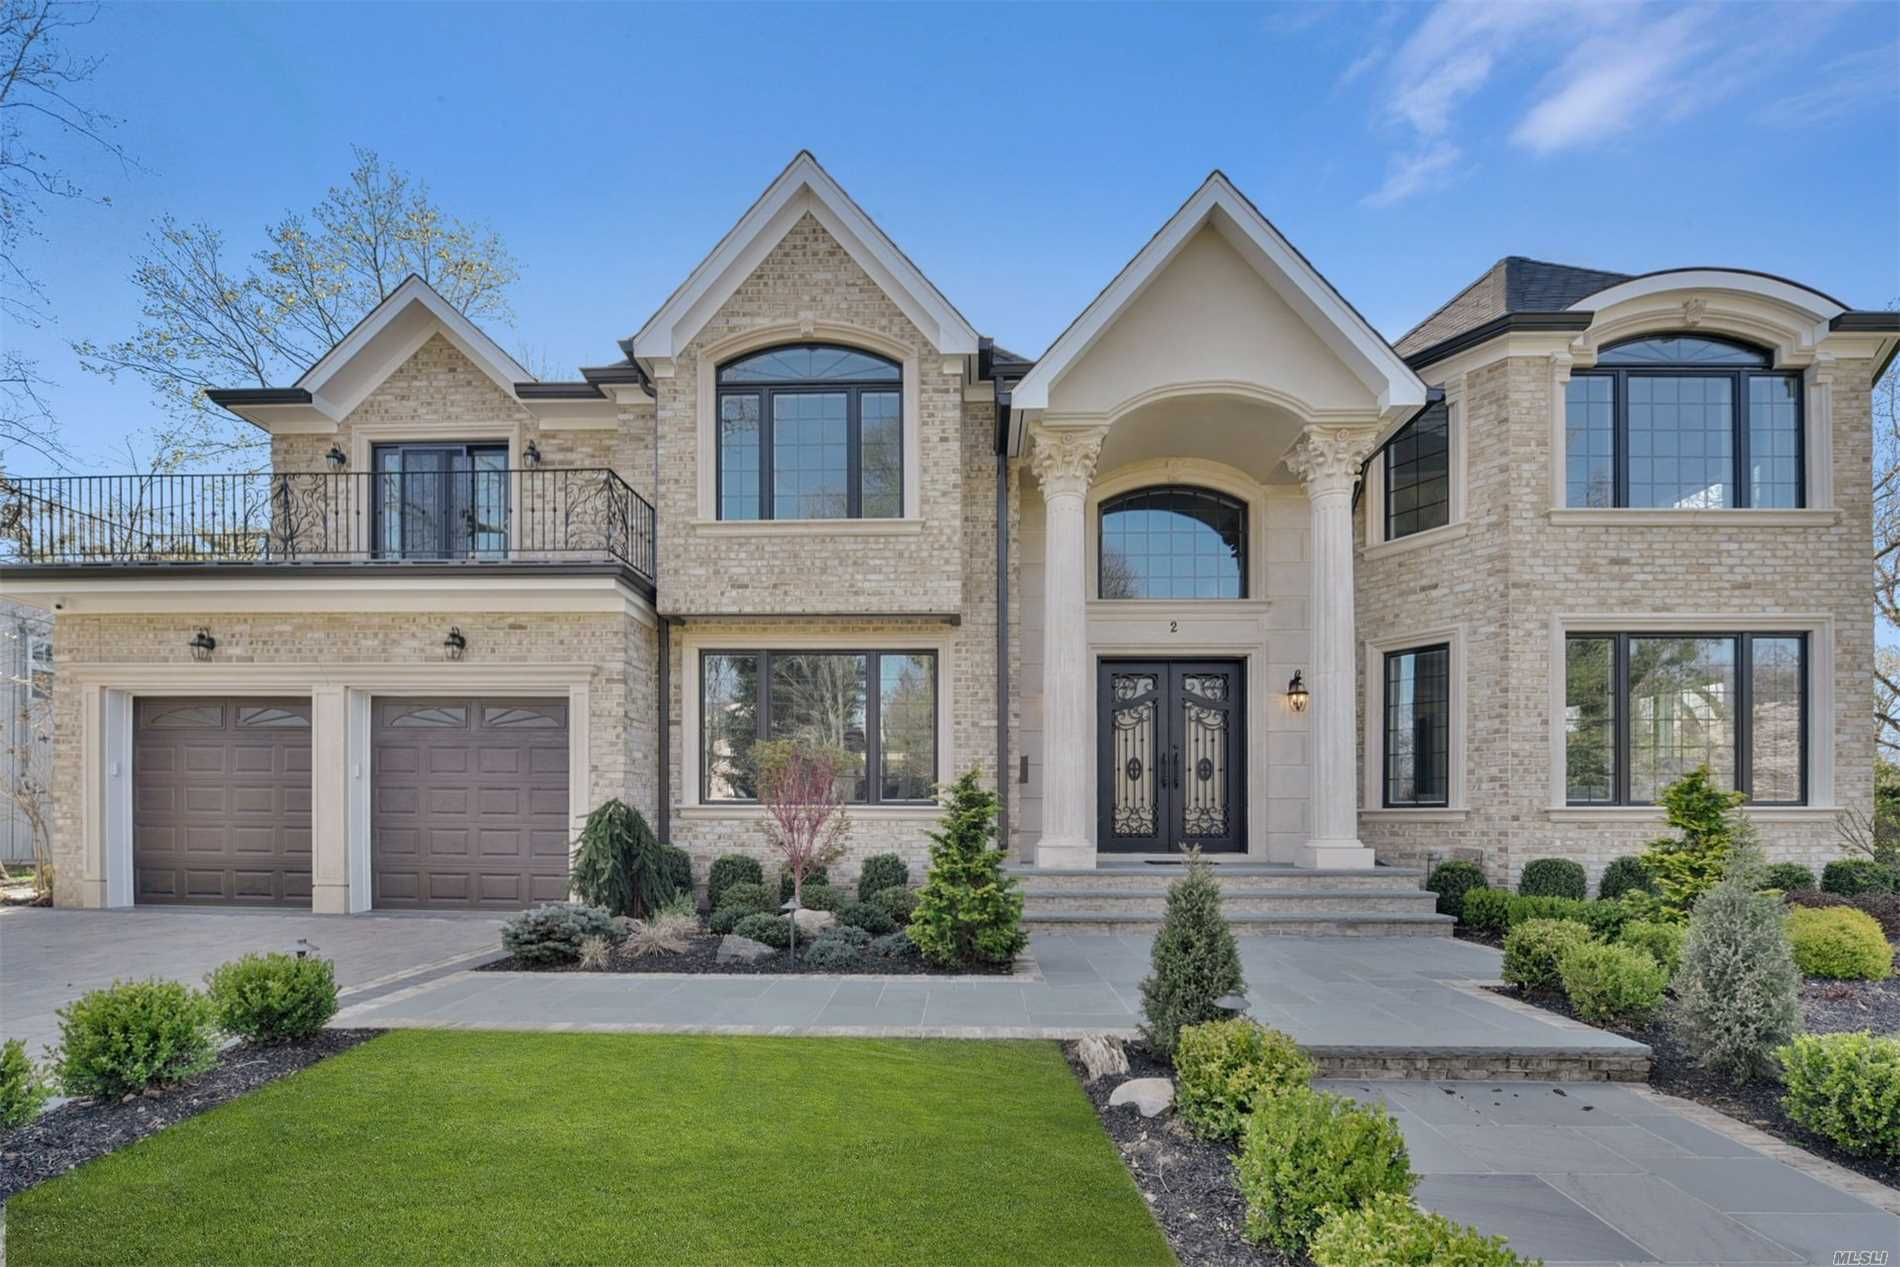 Elegant Brick Center Hall Colonial set on a magnificent, landscaped over-sized property in the heart of the Country Club section of Roslyn Heights. Radiant heat in foyer, kitchen, and all baths. Surround system, security cameras, full house generator, ready for heated driveway. Built without compromise (this is not a typical builder's home). This home reflects only the very best! Very bright home with sliding doors in the breakfast area overlooking the beautiful backyard. Must See!